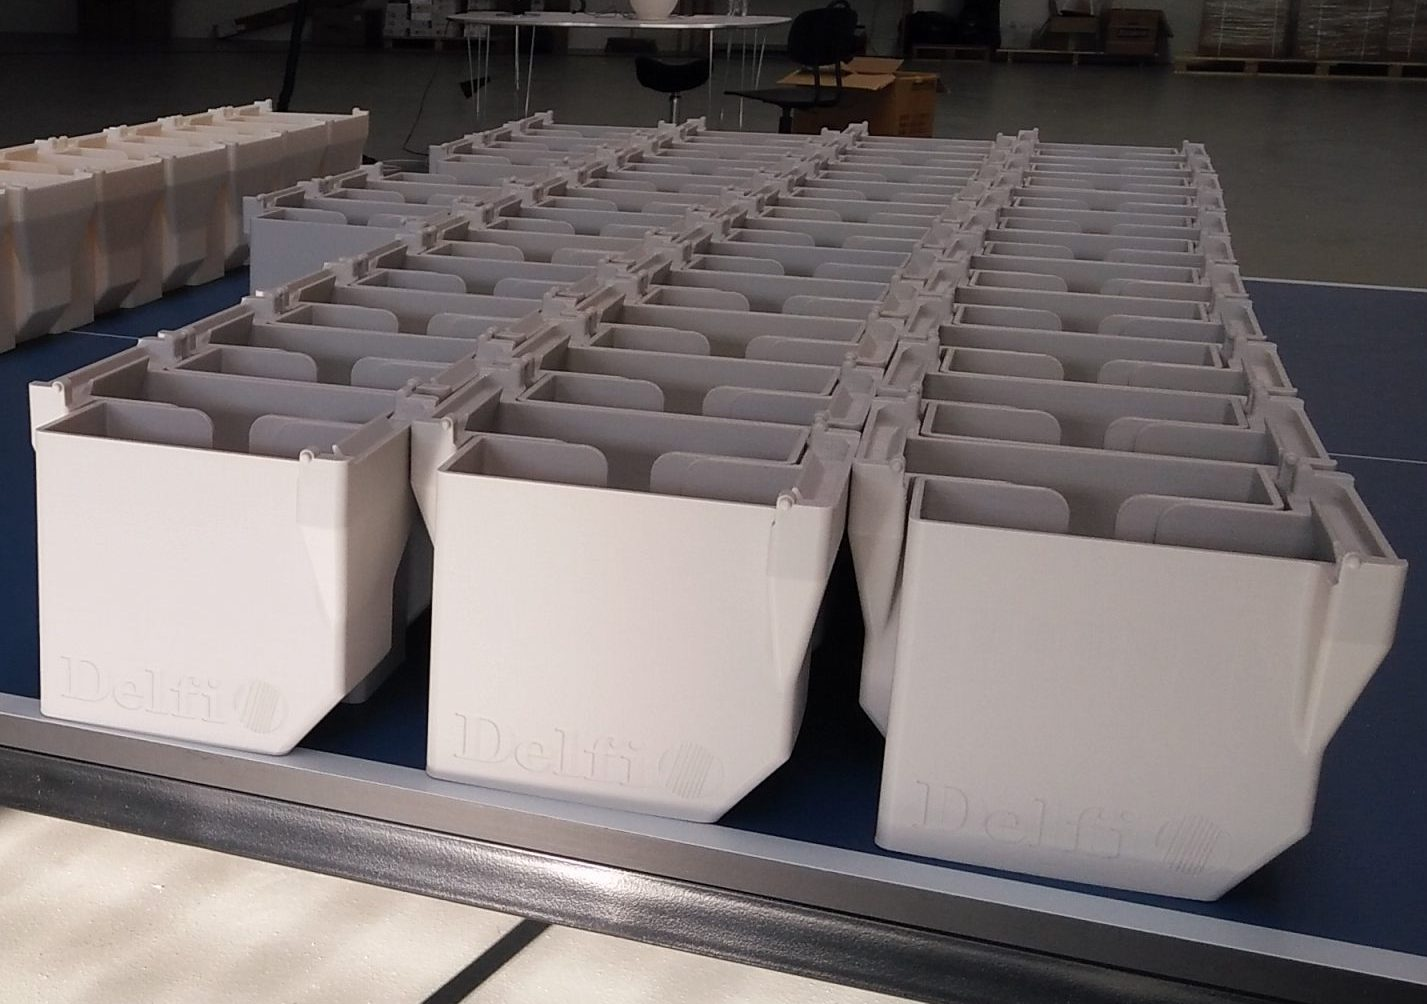 High Volume FDM ABS Manufacturing for Delfi Technologies A/S